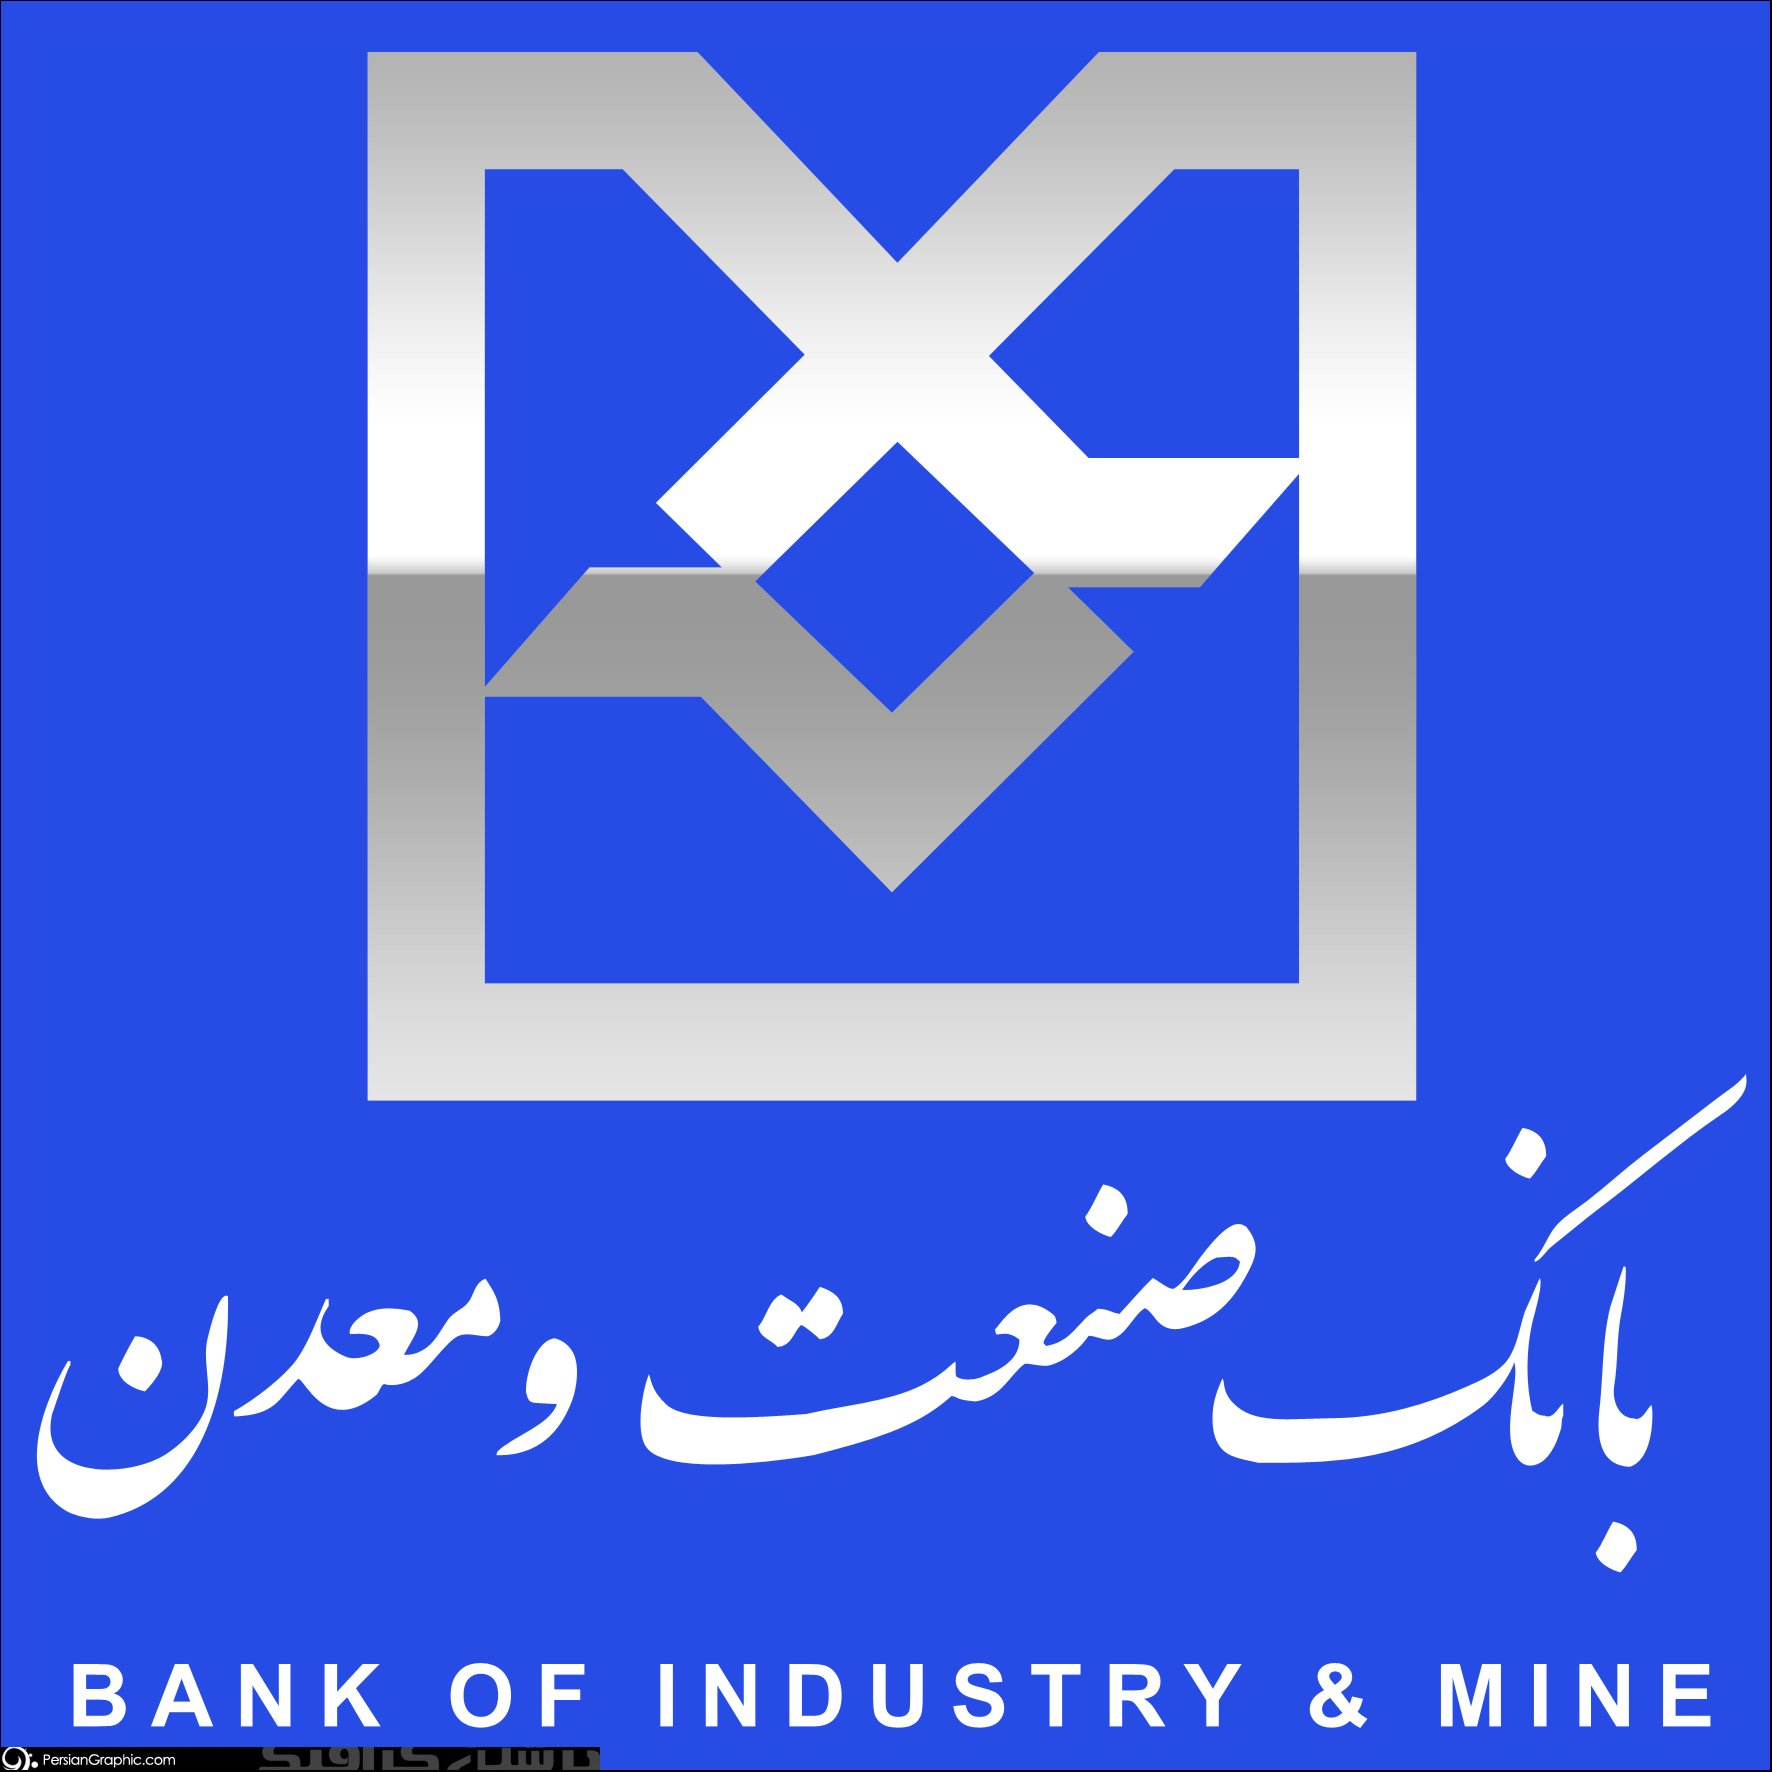 Negotiating Investors of Hamedan Petrochemical Company with Bank of Industry and Mine